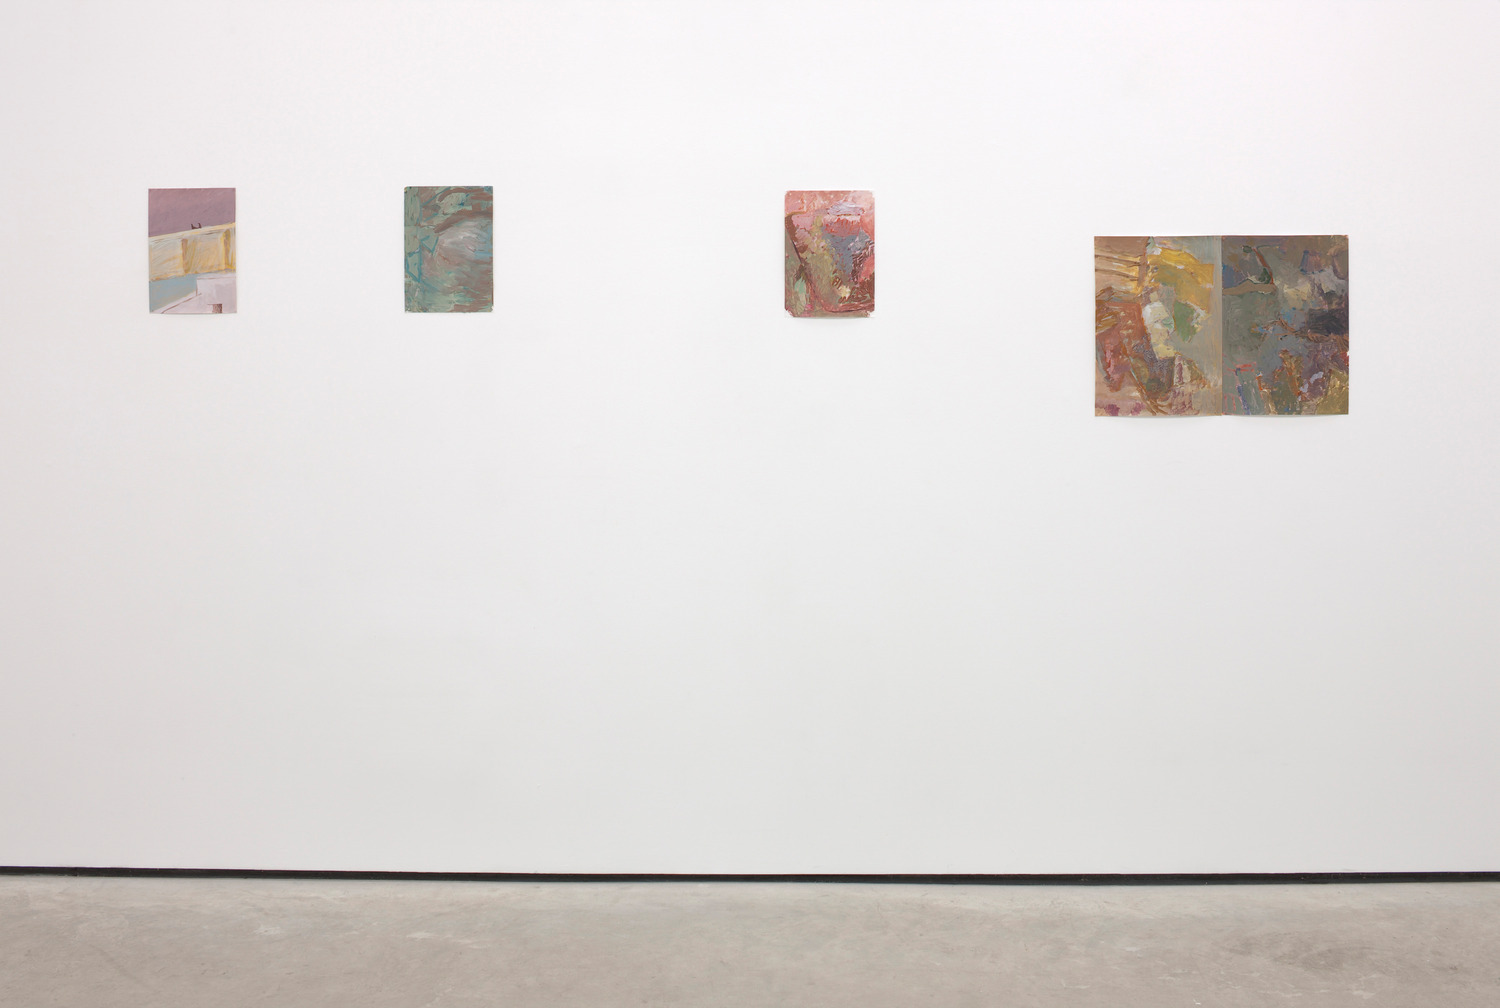 Installation view, 'Dellmess was Charged', The Modern Institute, Osborne Street, Glasgow, 2012